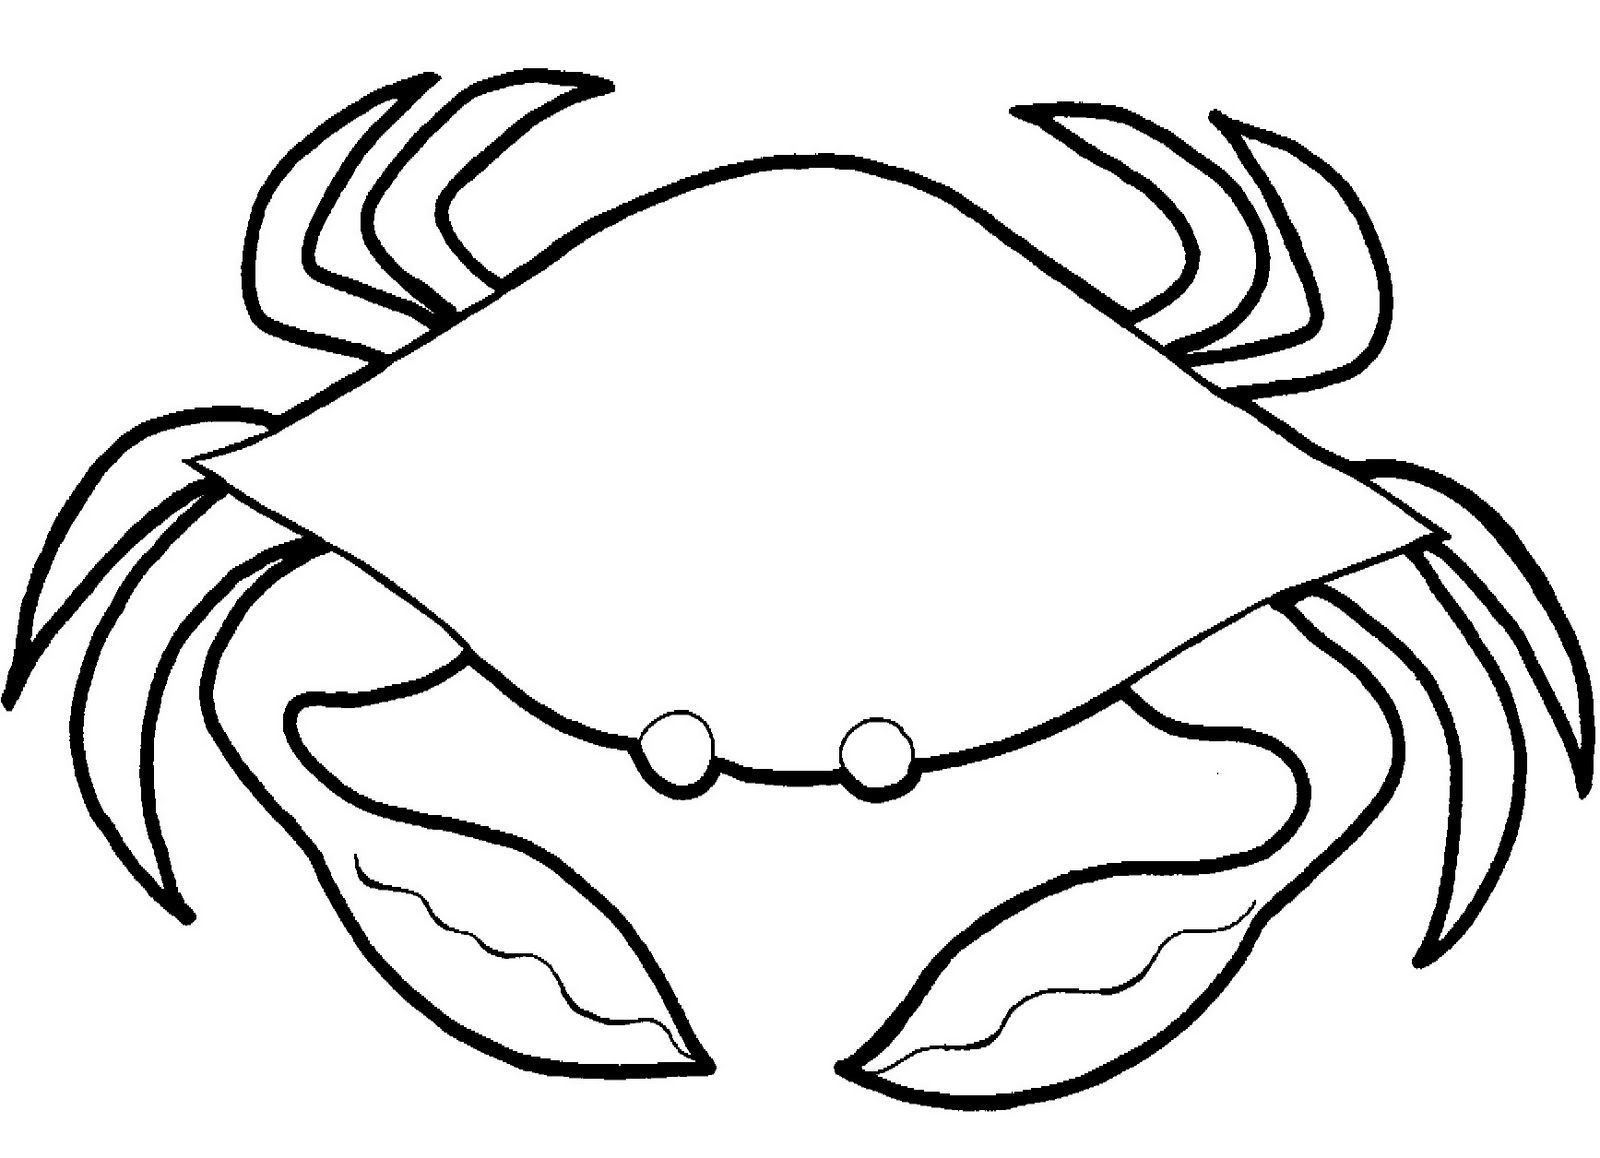 Crab Coloring Page Animal Coloring Pages Coloring Pages Fish